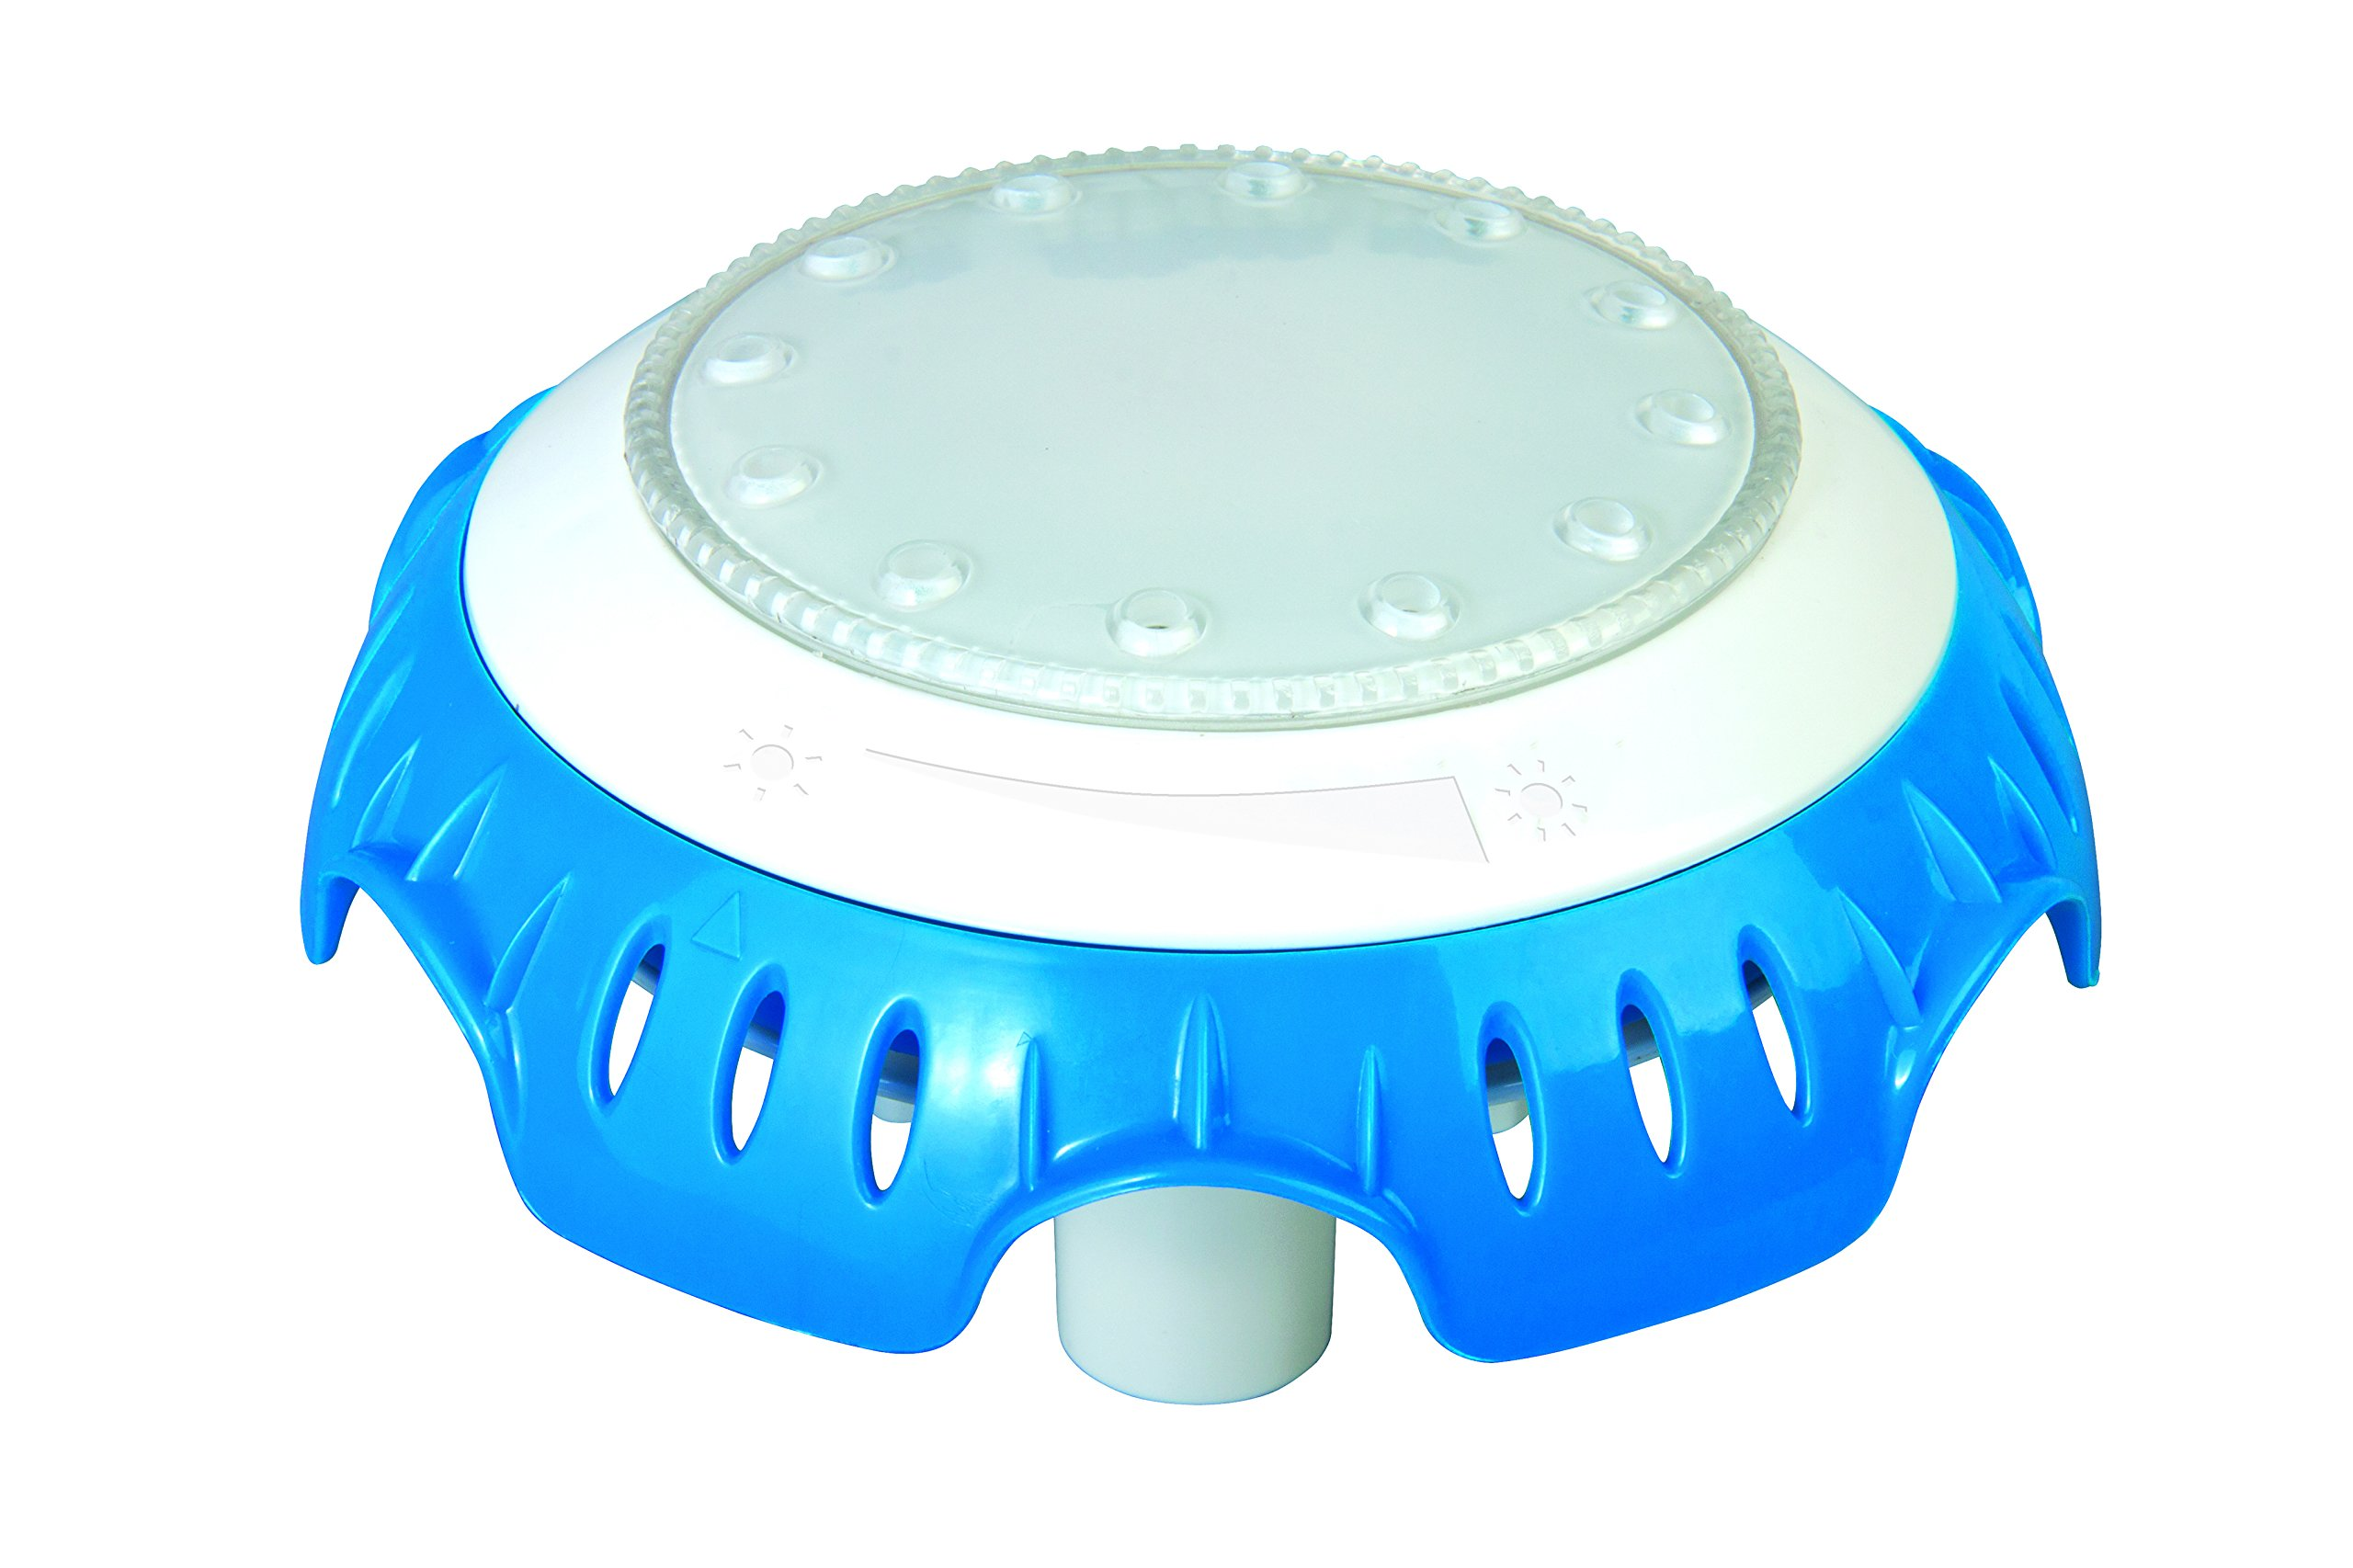 Bestway 8321660 8321660-Luz led Multicolor para Piscina, Azul ...